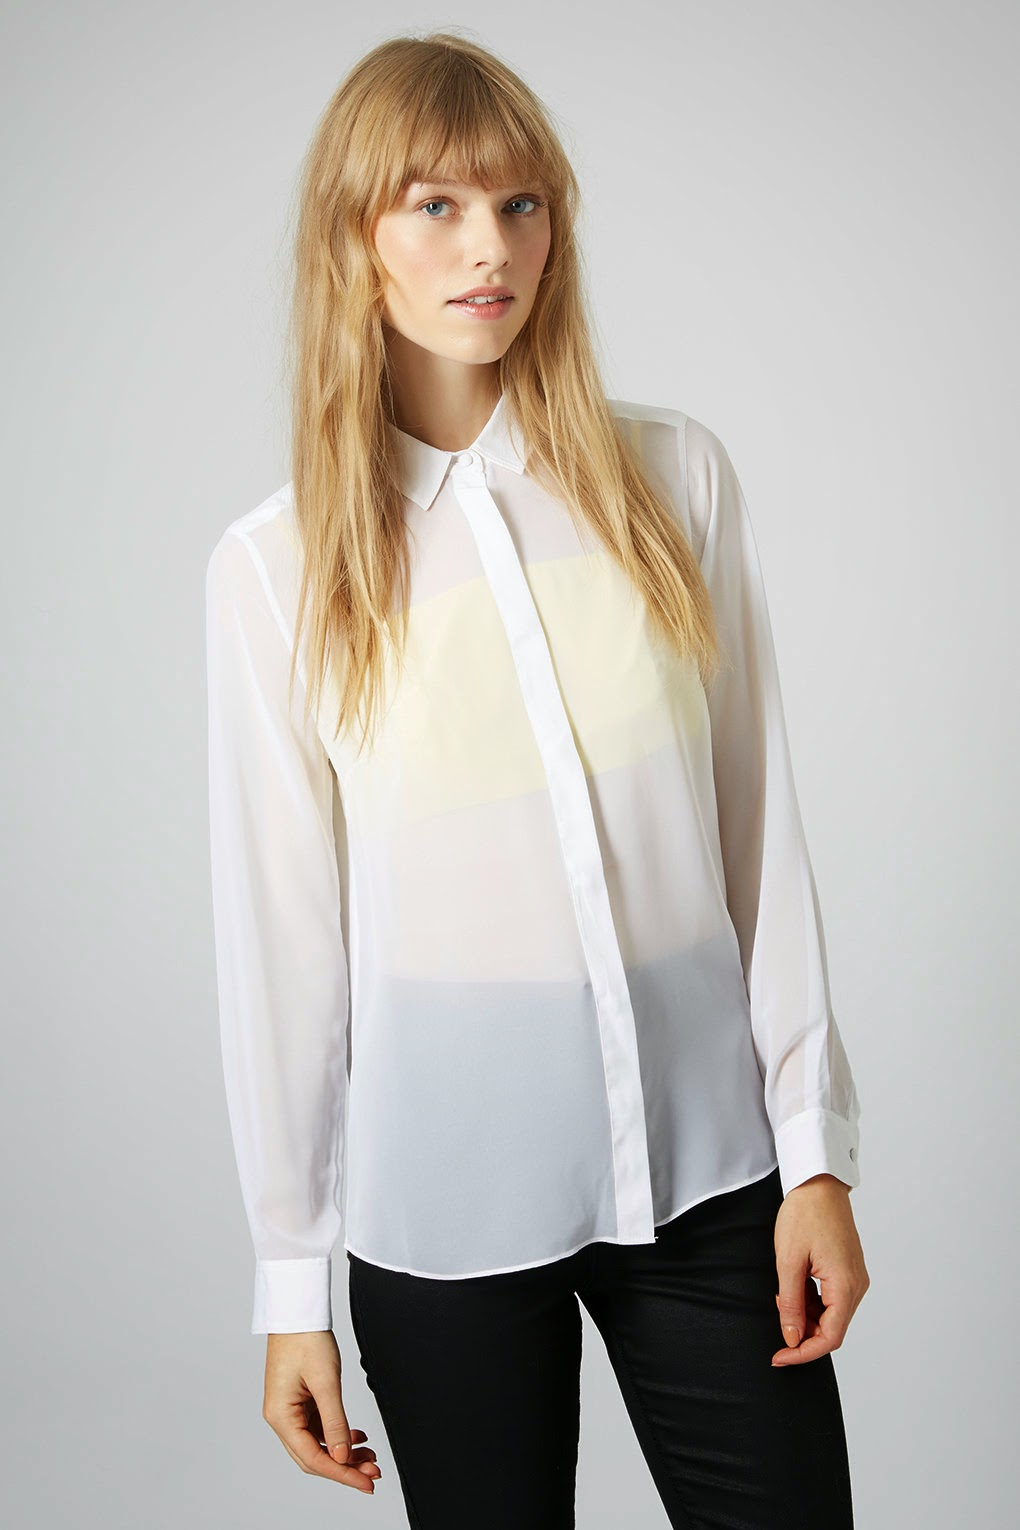 white shirt with yellow